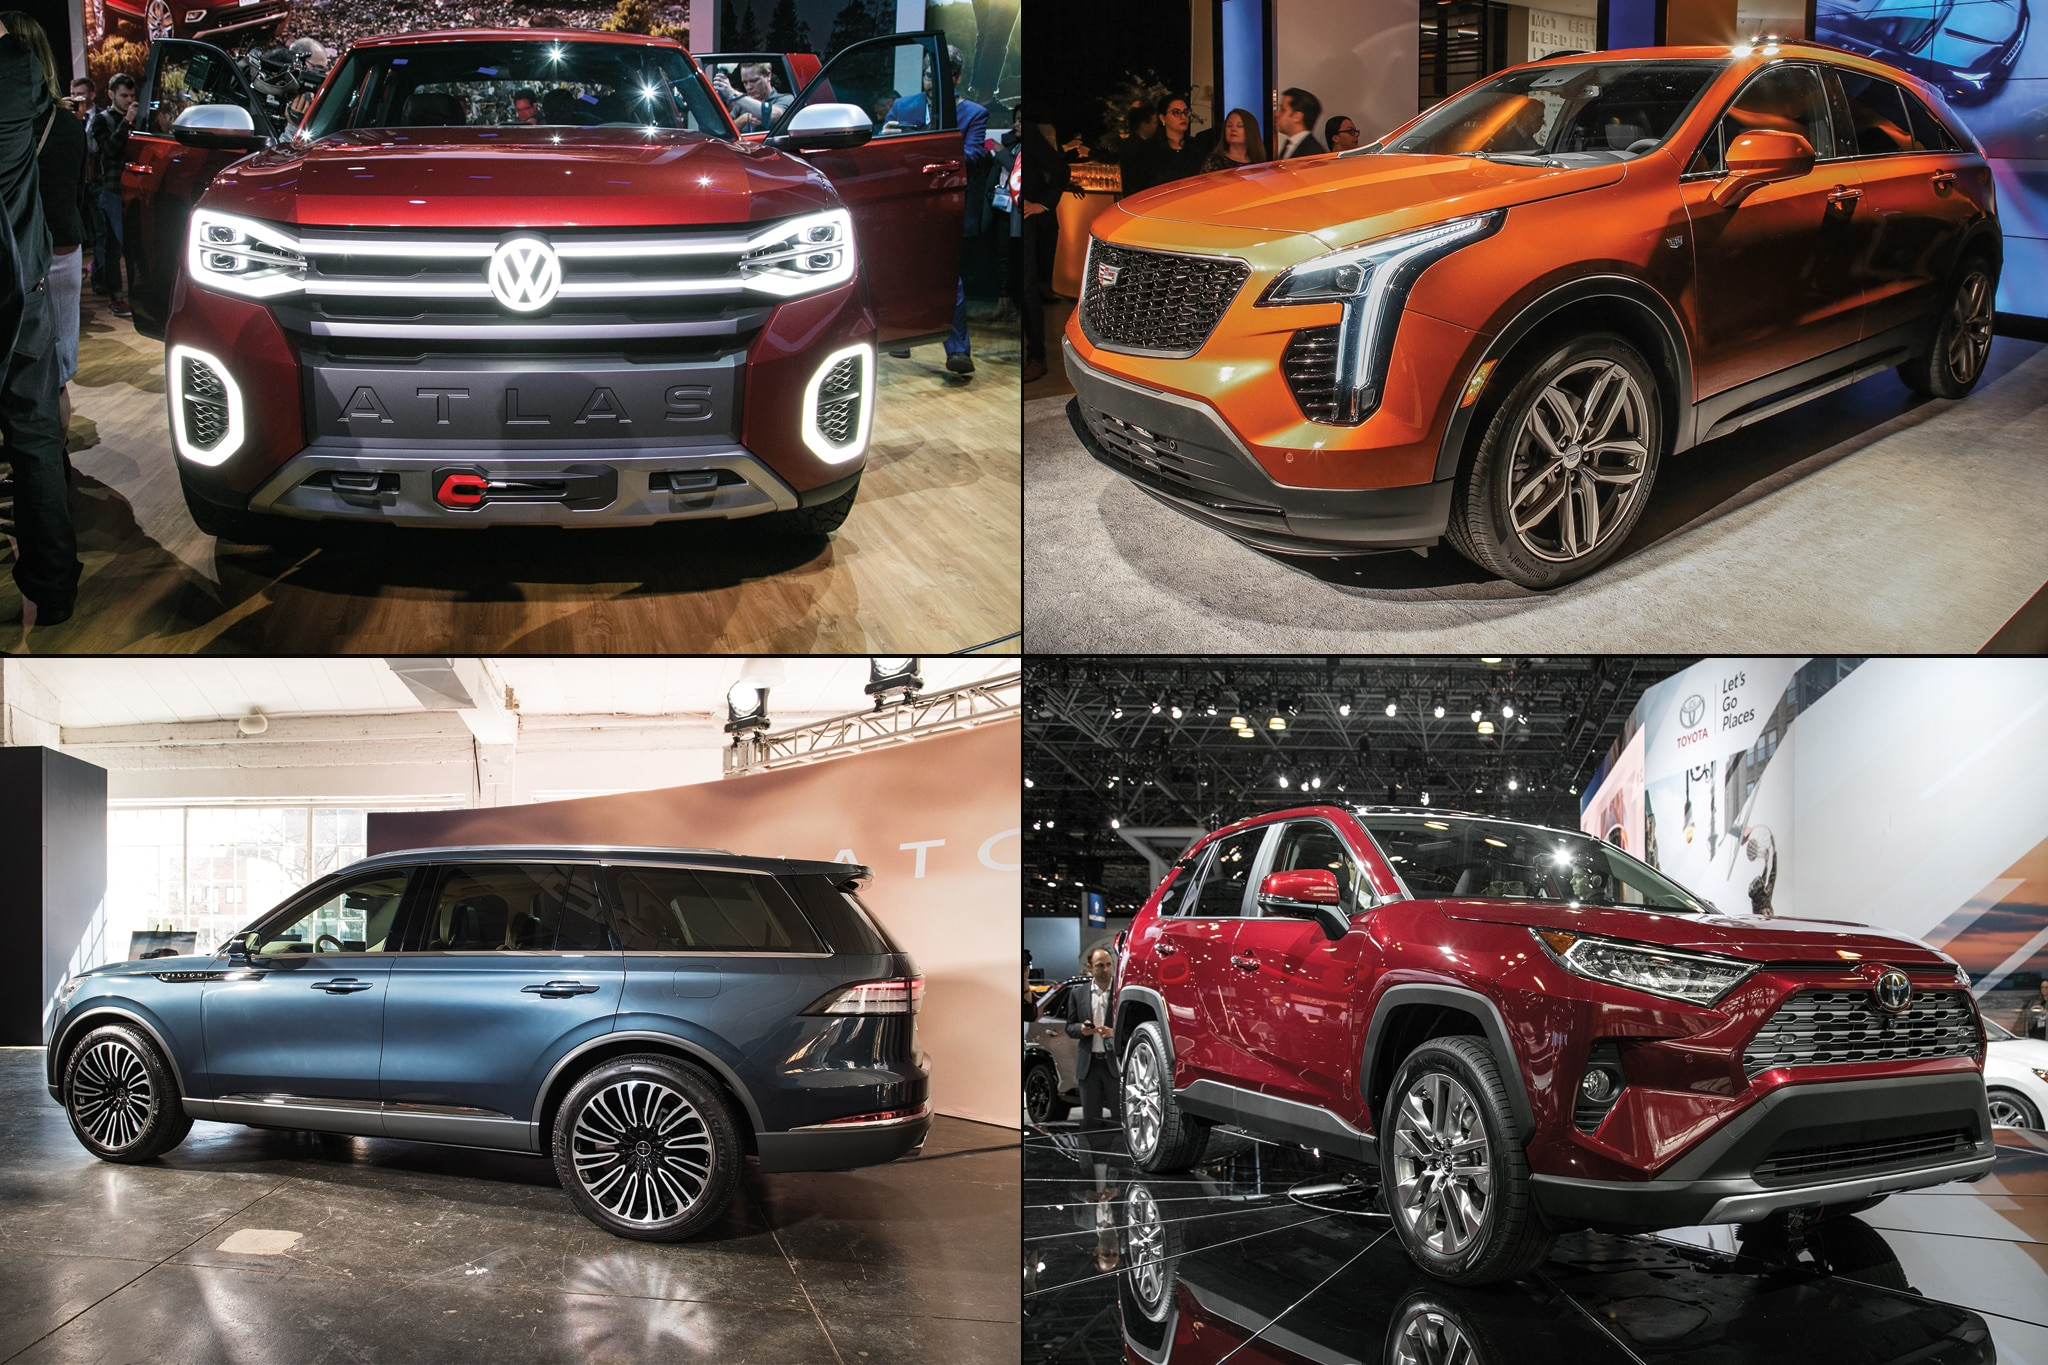 New York Auto Show Hits Misses And Revelations Automobile - New york car show 2018